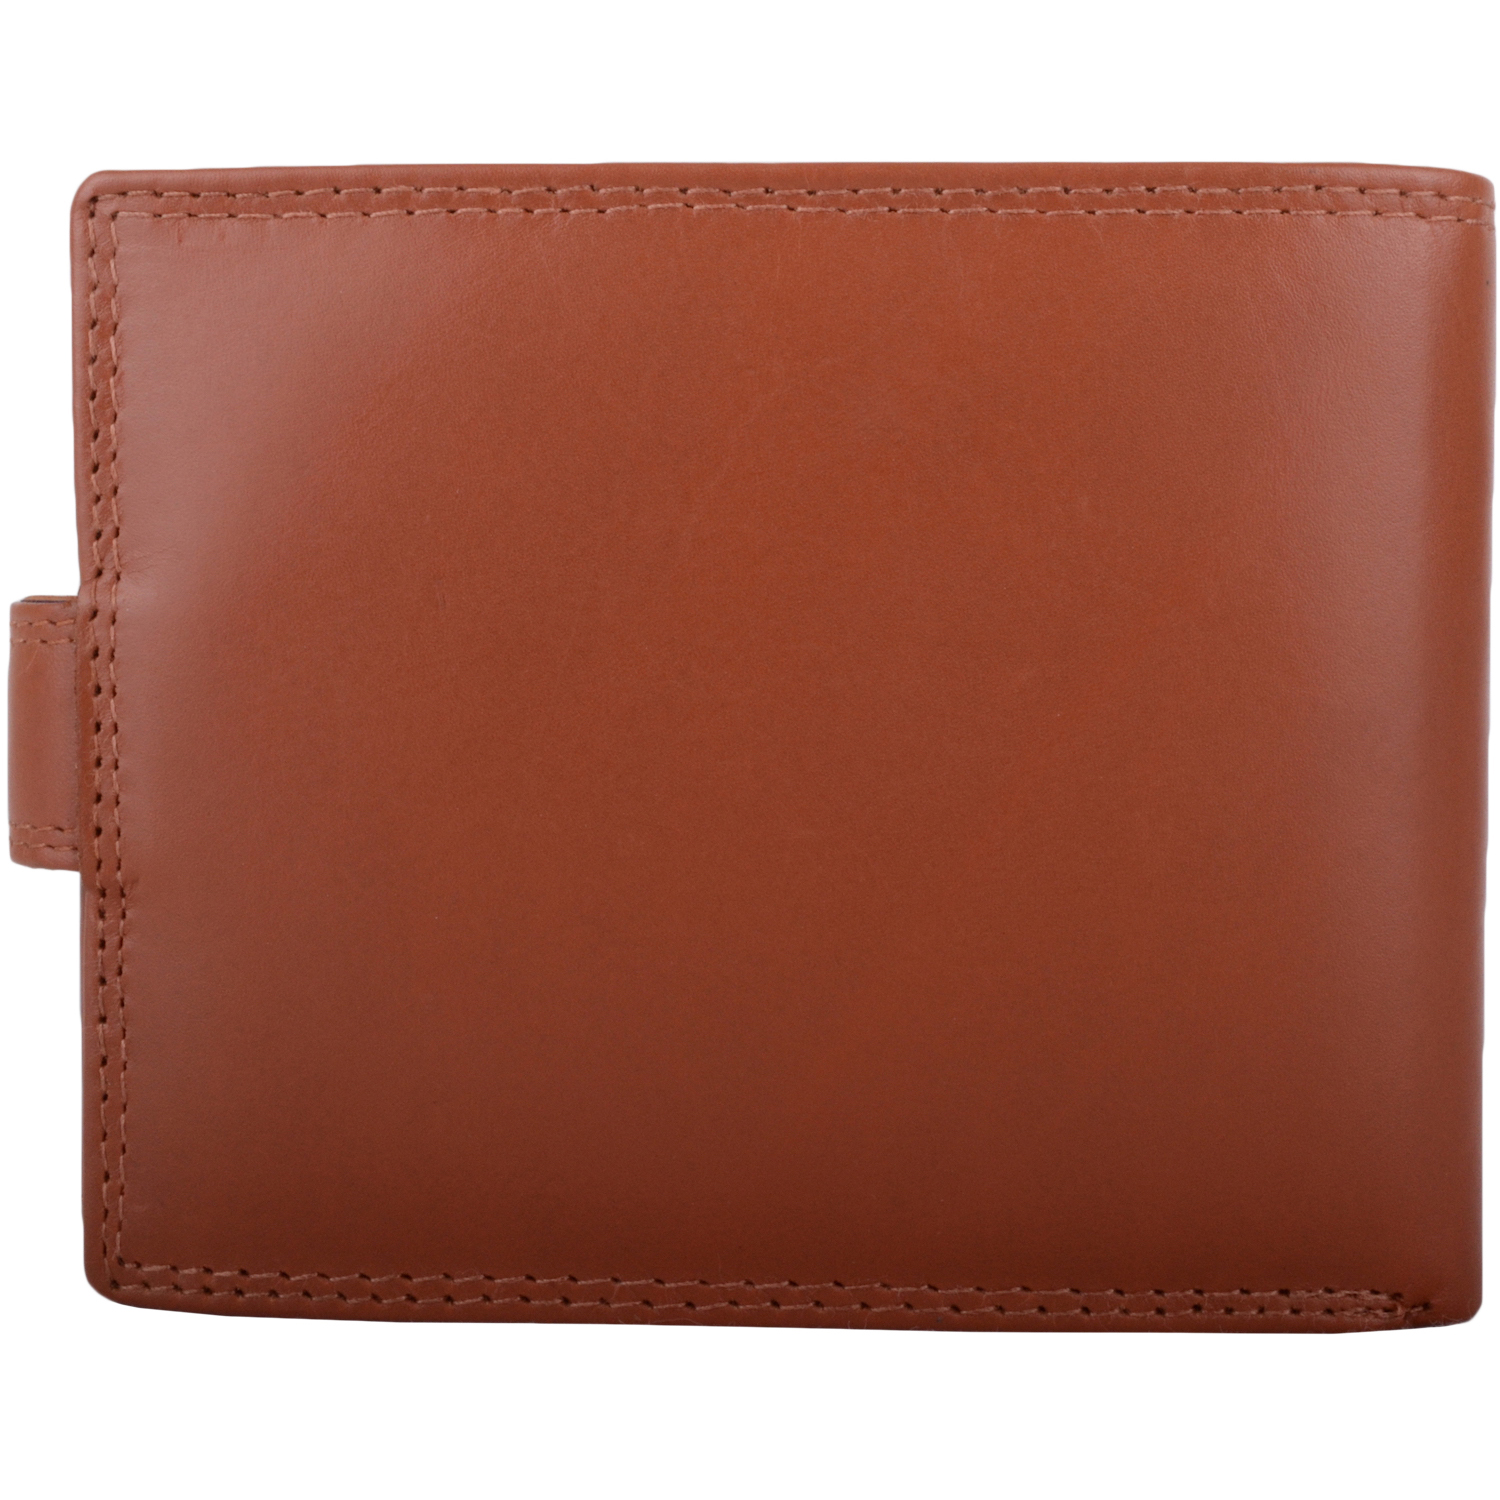 Soft Leather Bi-Fold RFID Protected Wallet - Tan